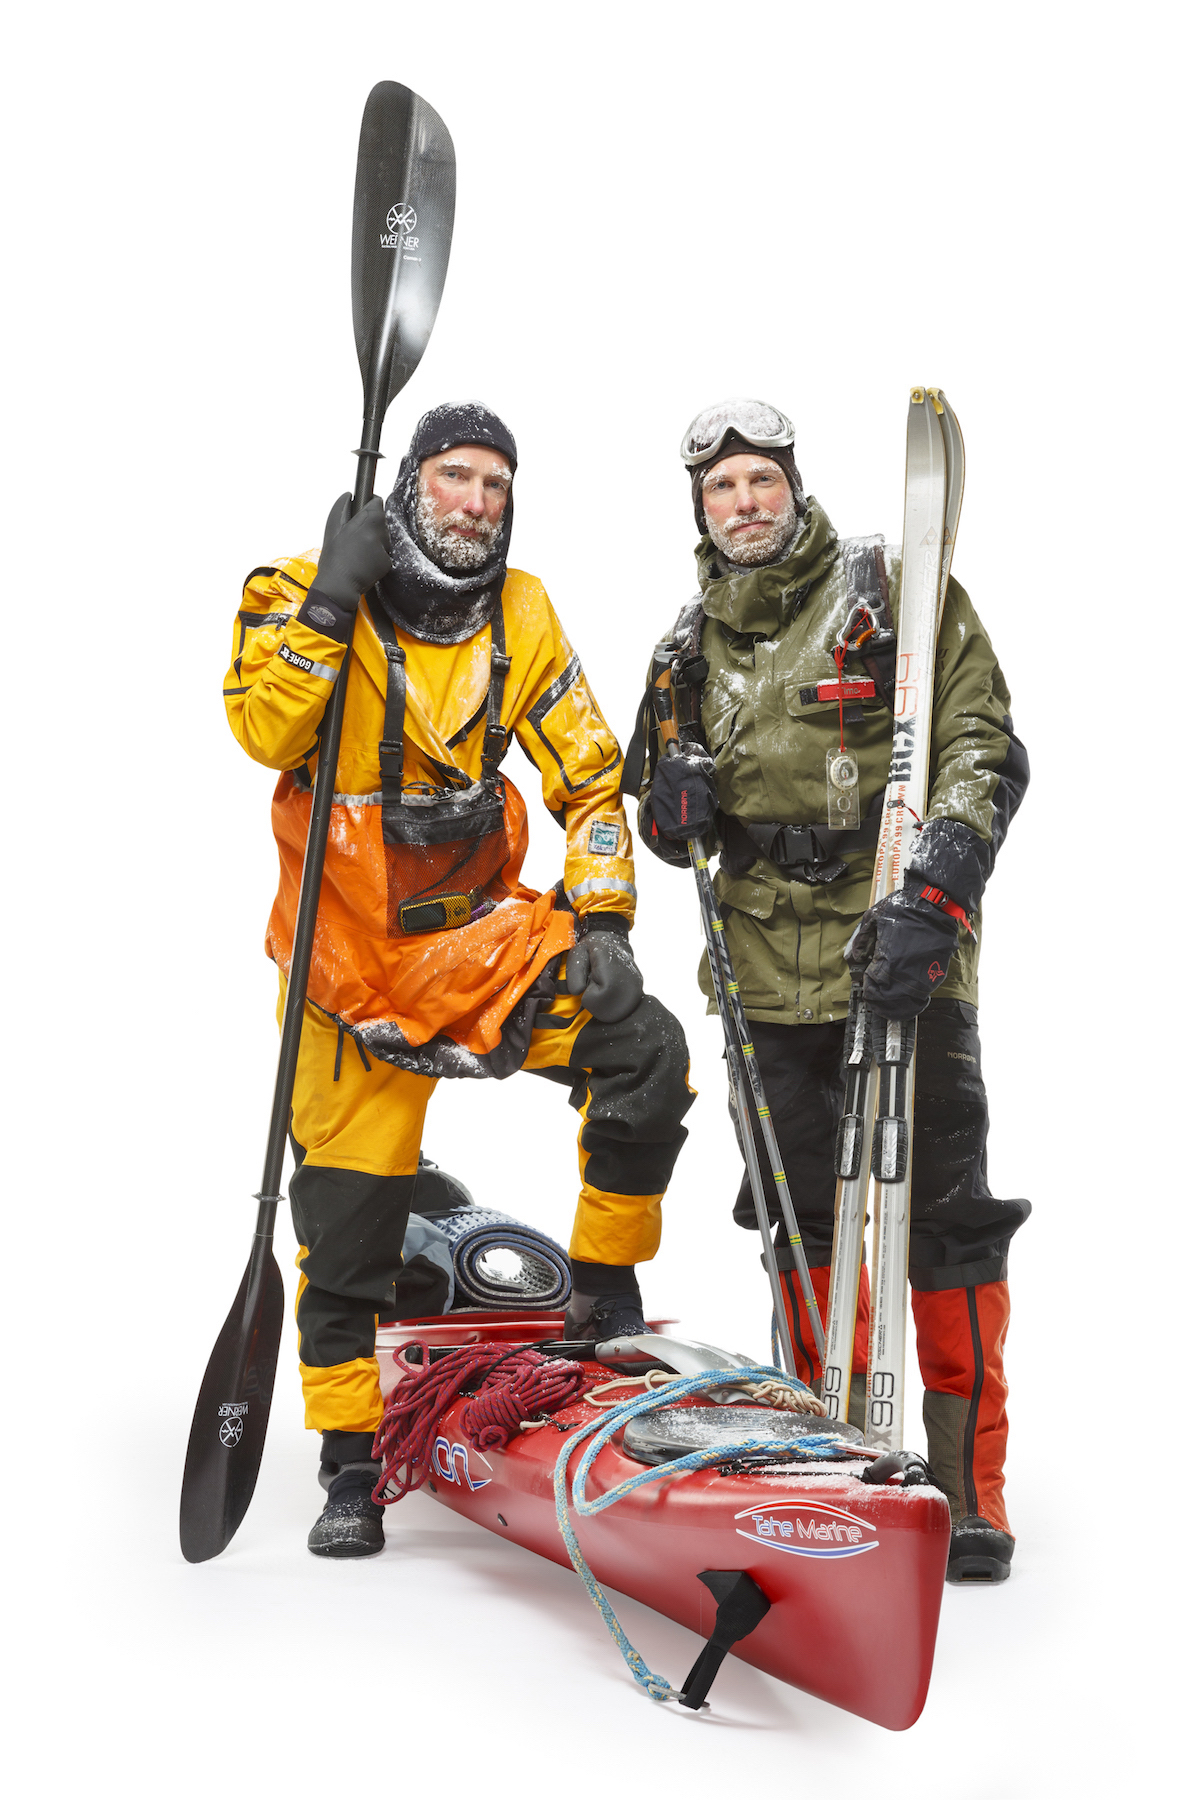 Audun Tholfsen and Timo Palo _Fastest Unsupported Trek From North Pole To Land_87A4471 (1)